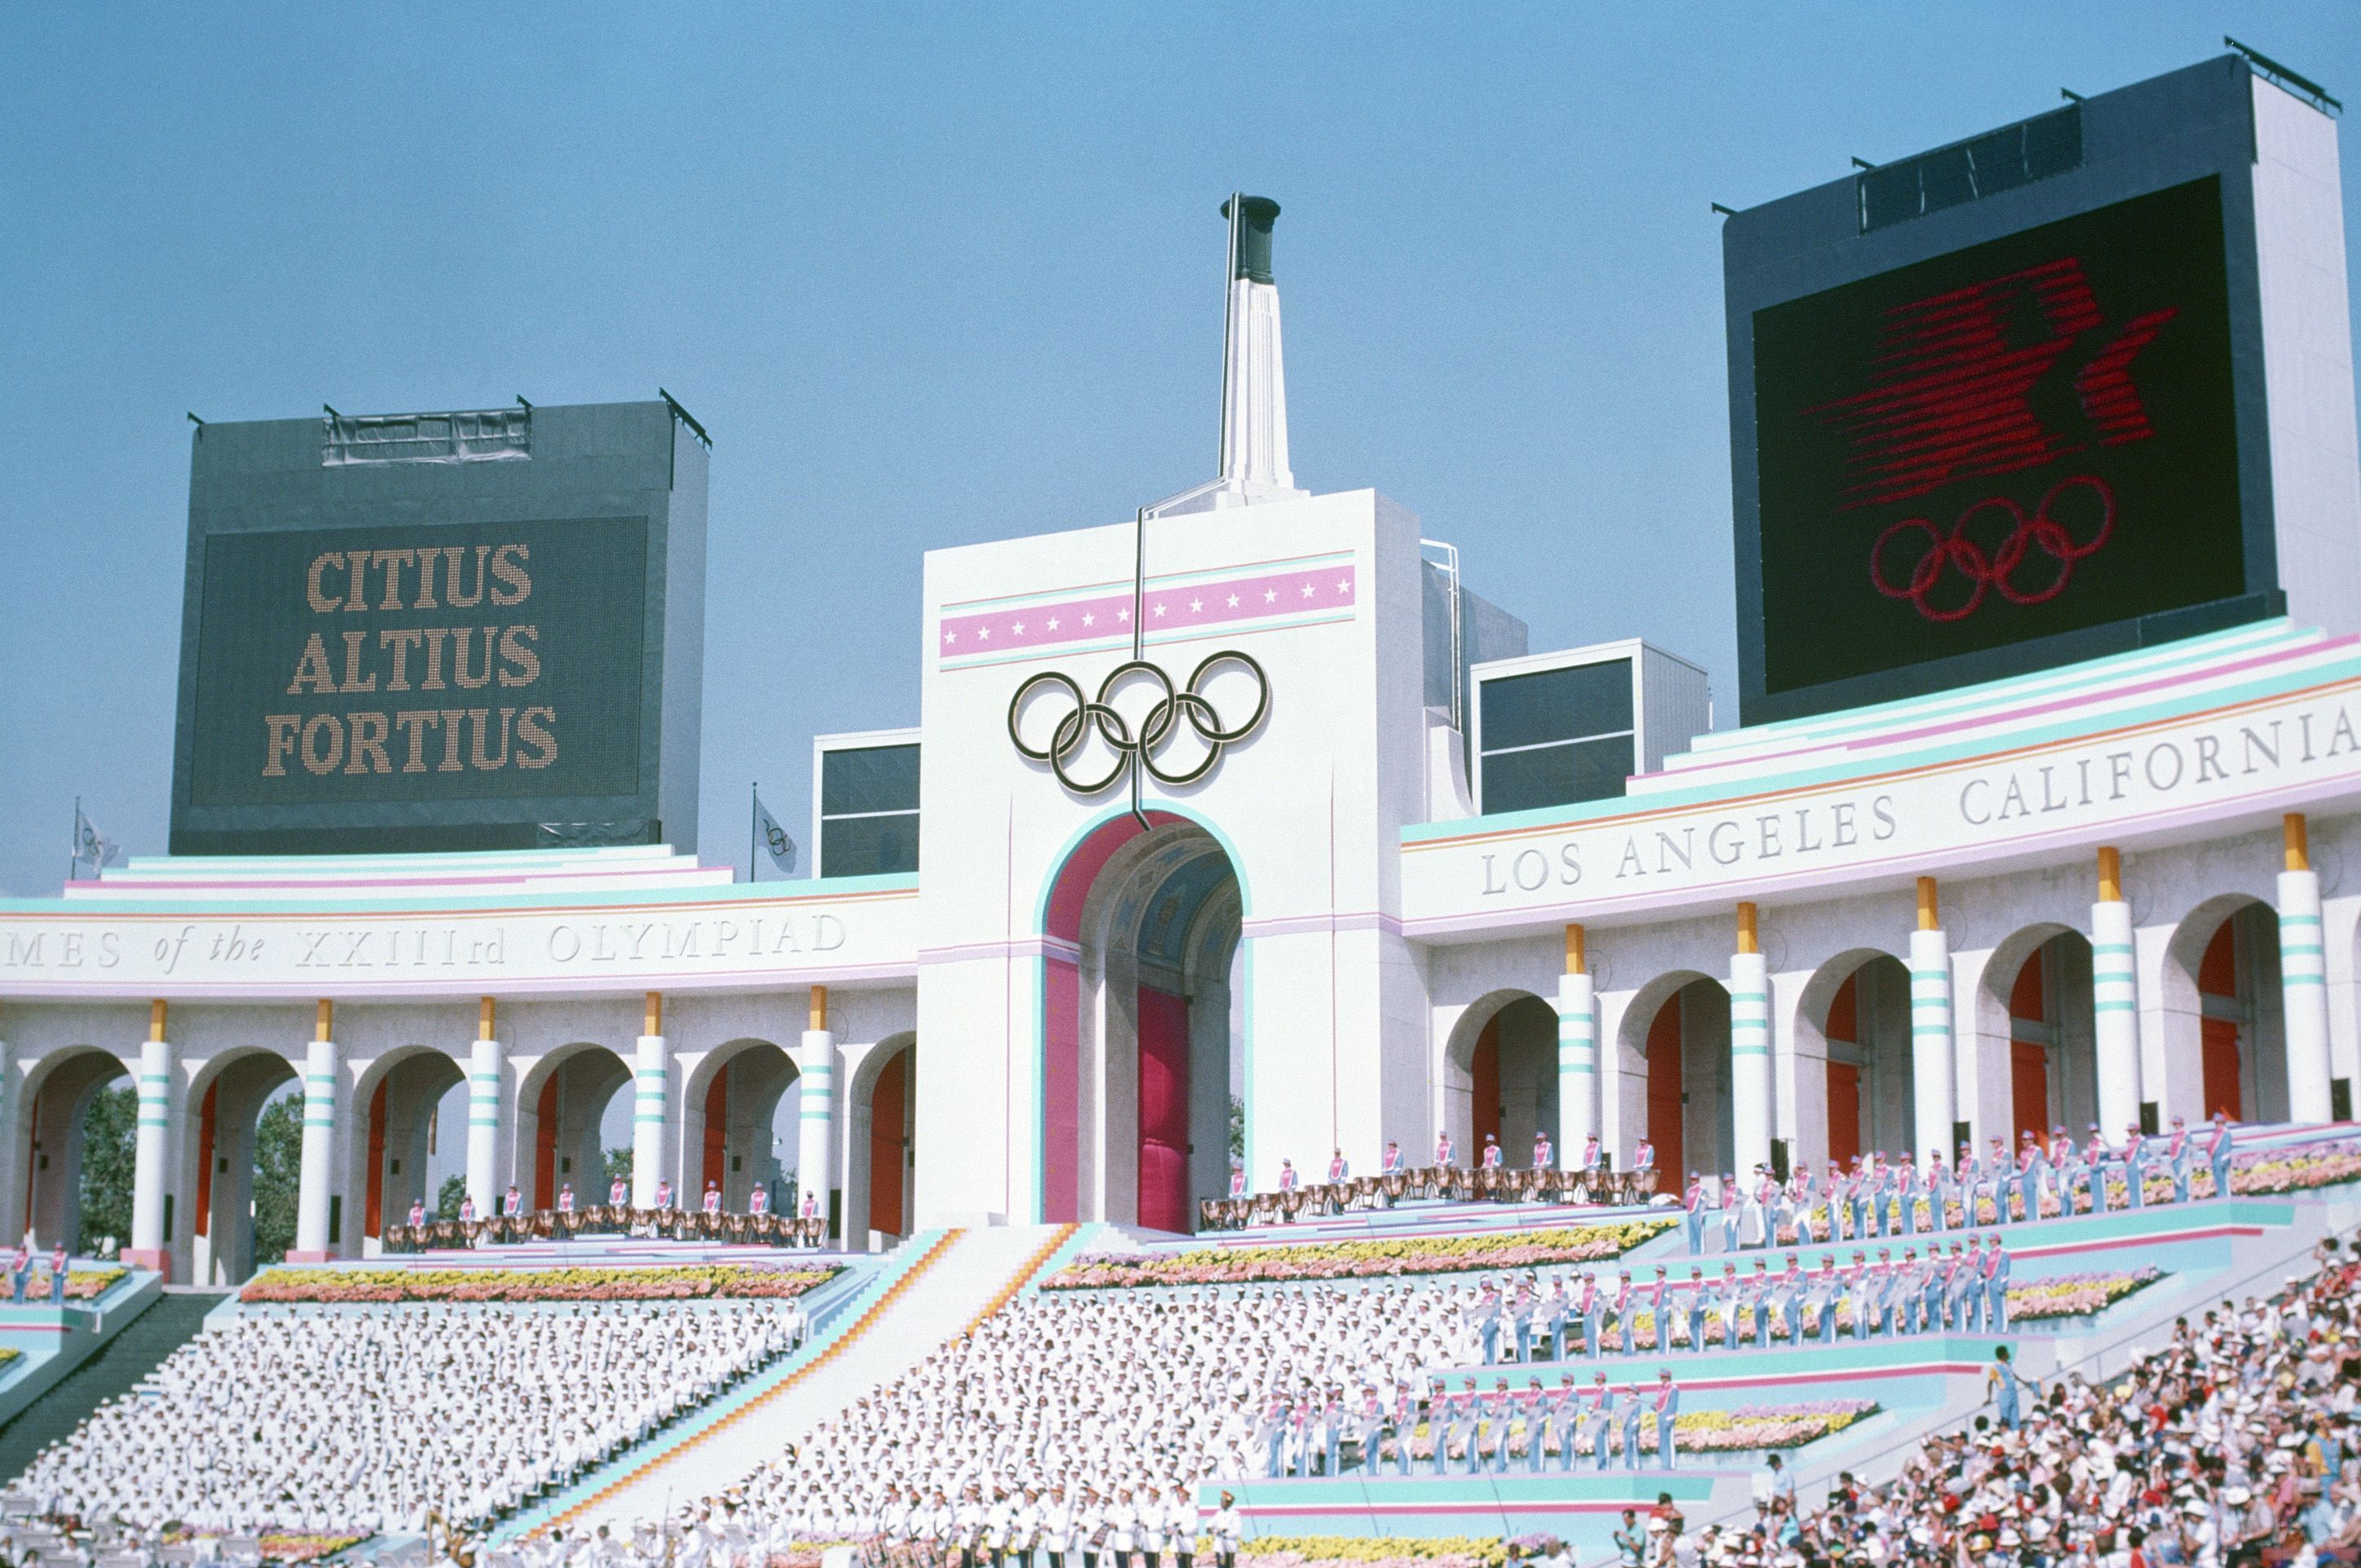 The Most aesthetic Olympics Ever La 1984 1984 Summer Olympics 1984 Olympics Summer Olympics